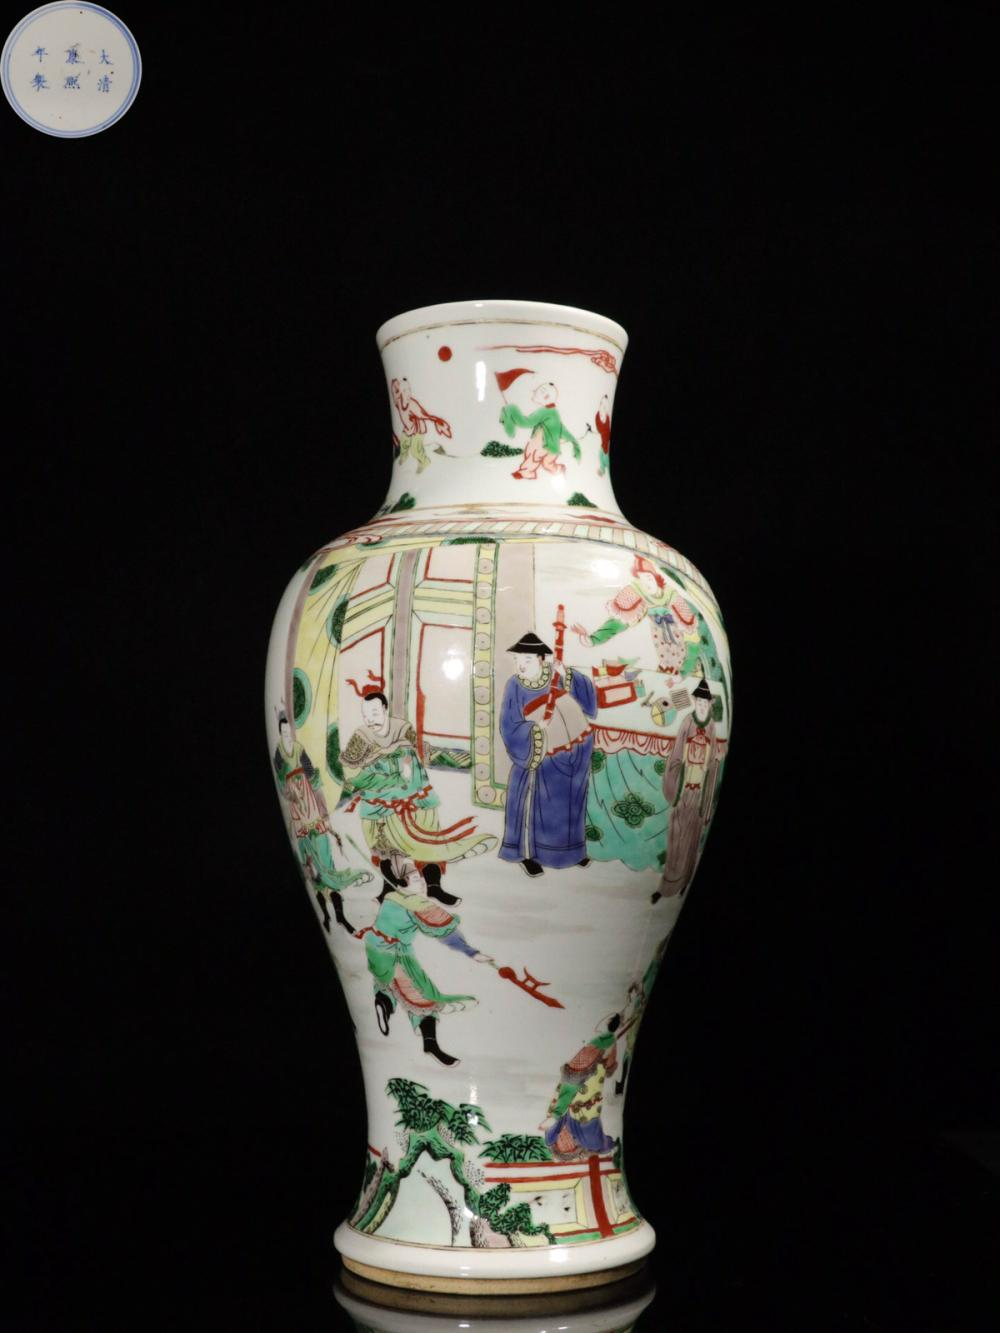 A KANGXI MARK FAMILLE PORCELAIN VASE WITH STORY-TELLING PATTERN